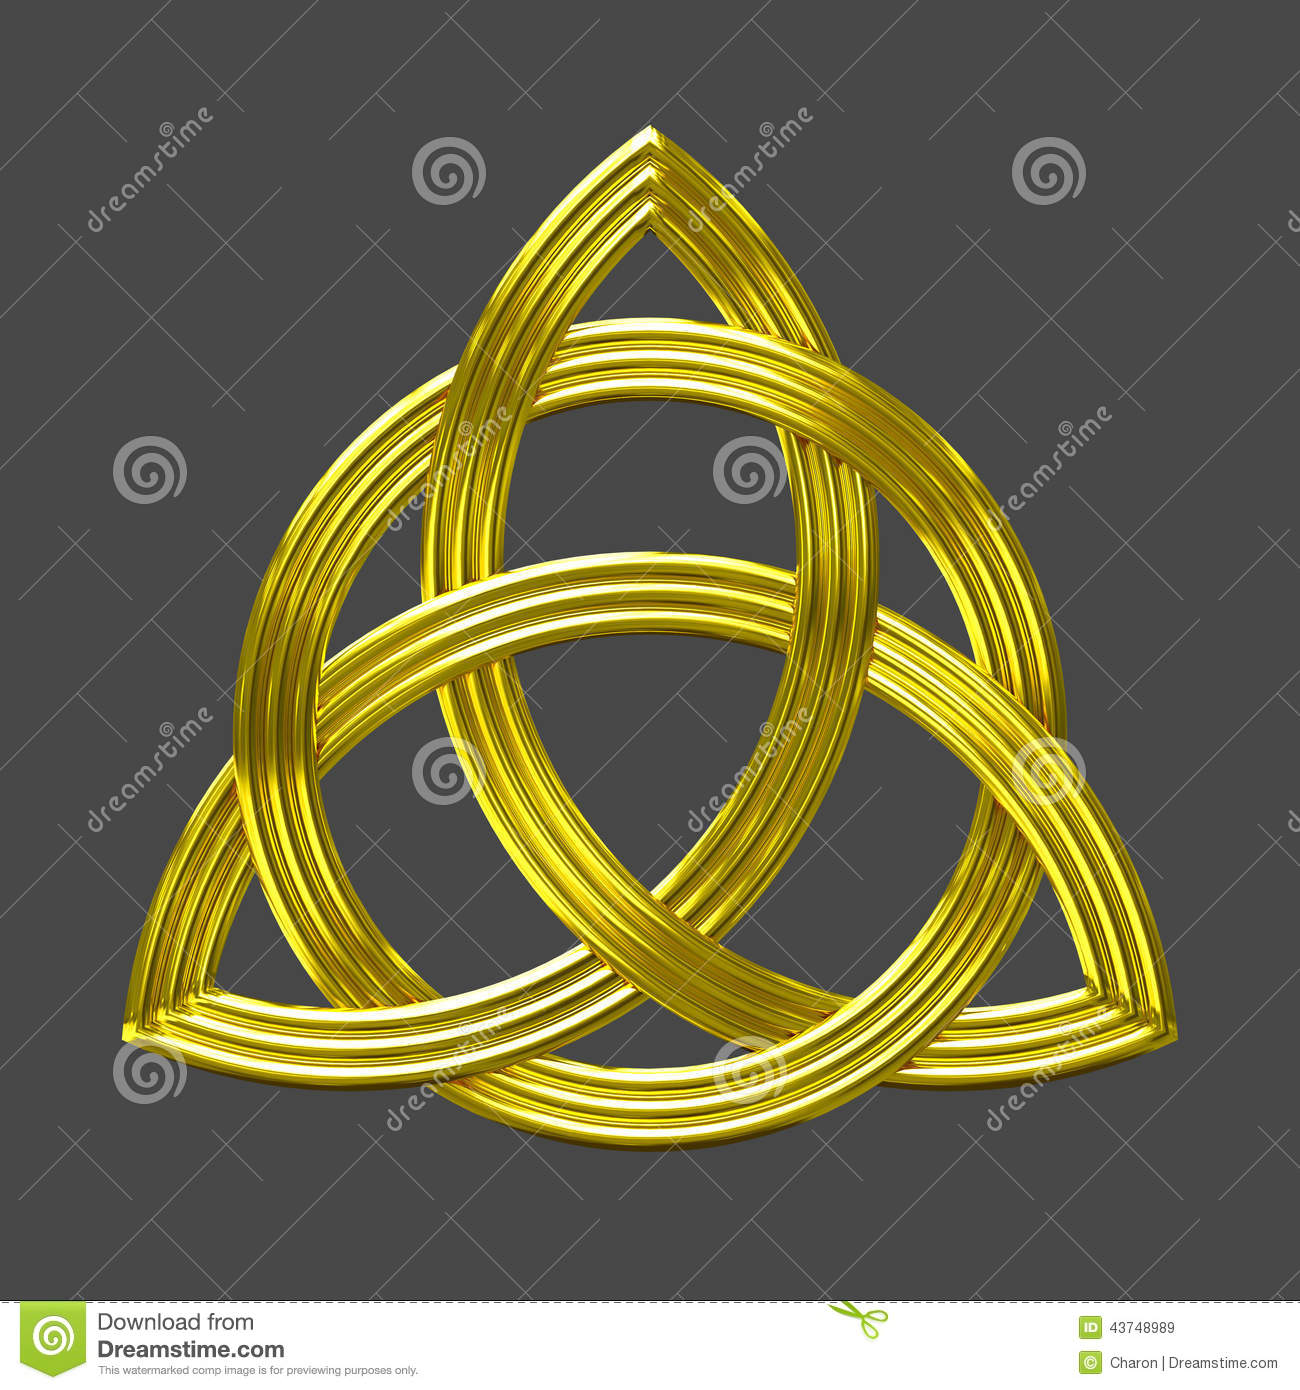 Triquetra Trinity Knot Gold Symbol Stock Image Image Of Furnishing